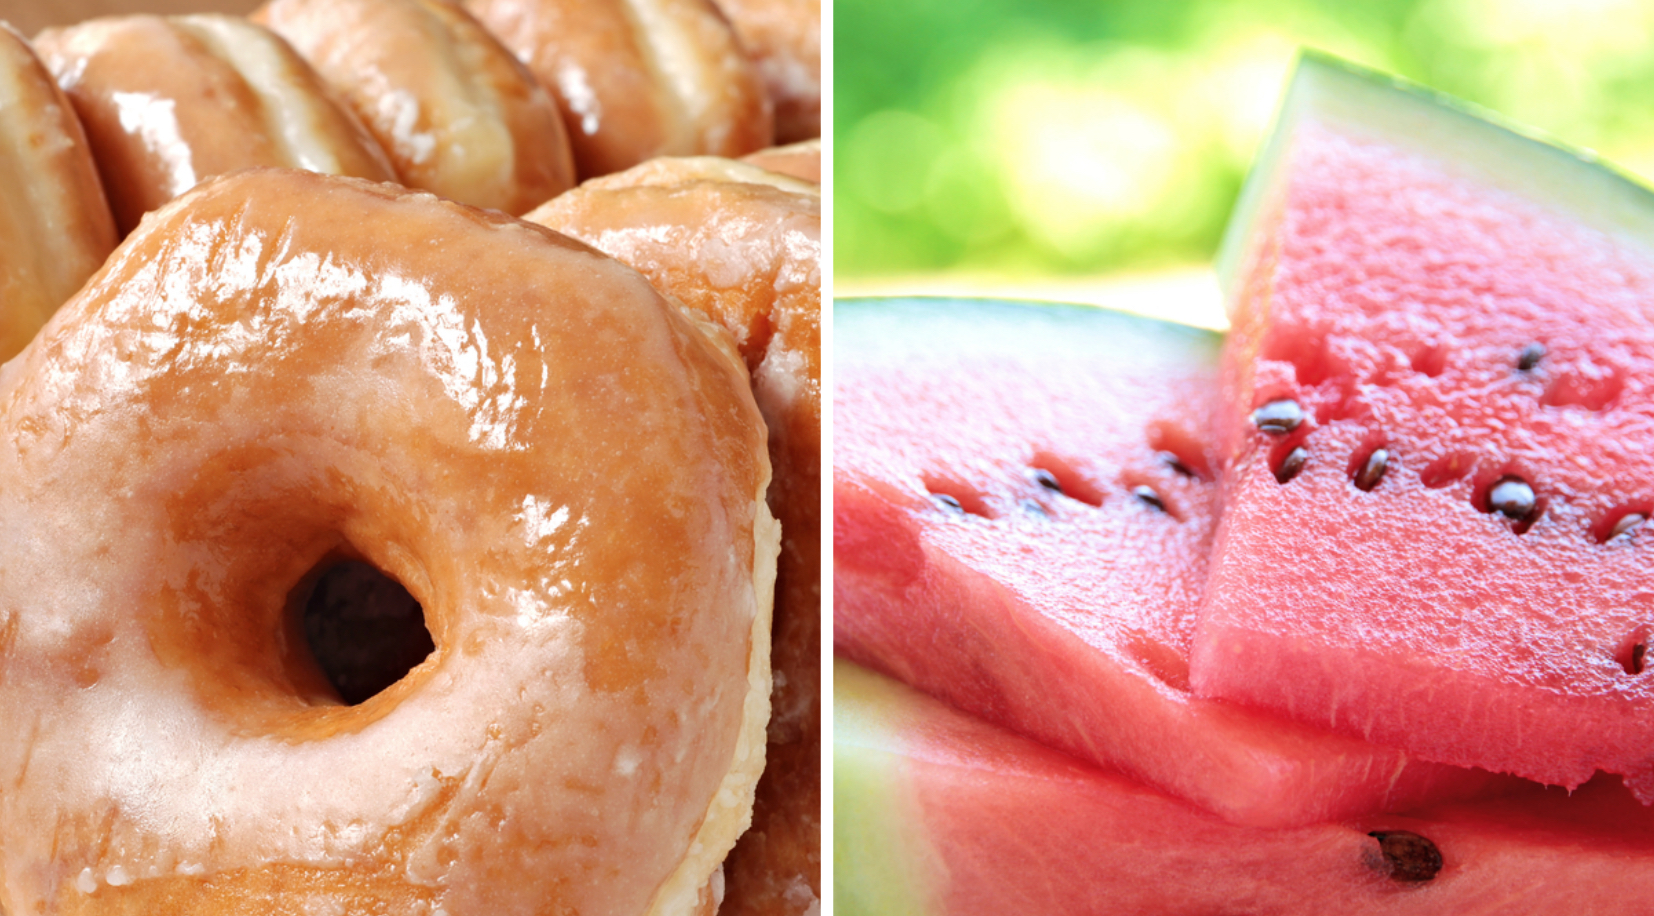 Krispy Kreme created a watermelon donut and it's the most insane thing we've ever seen